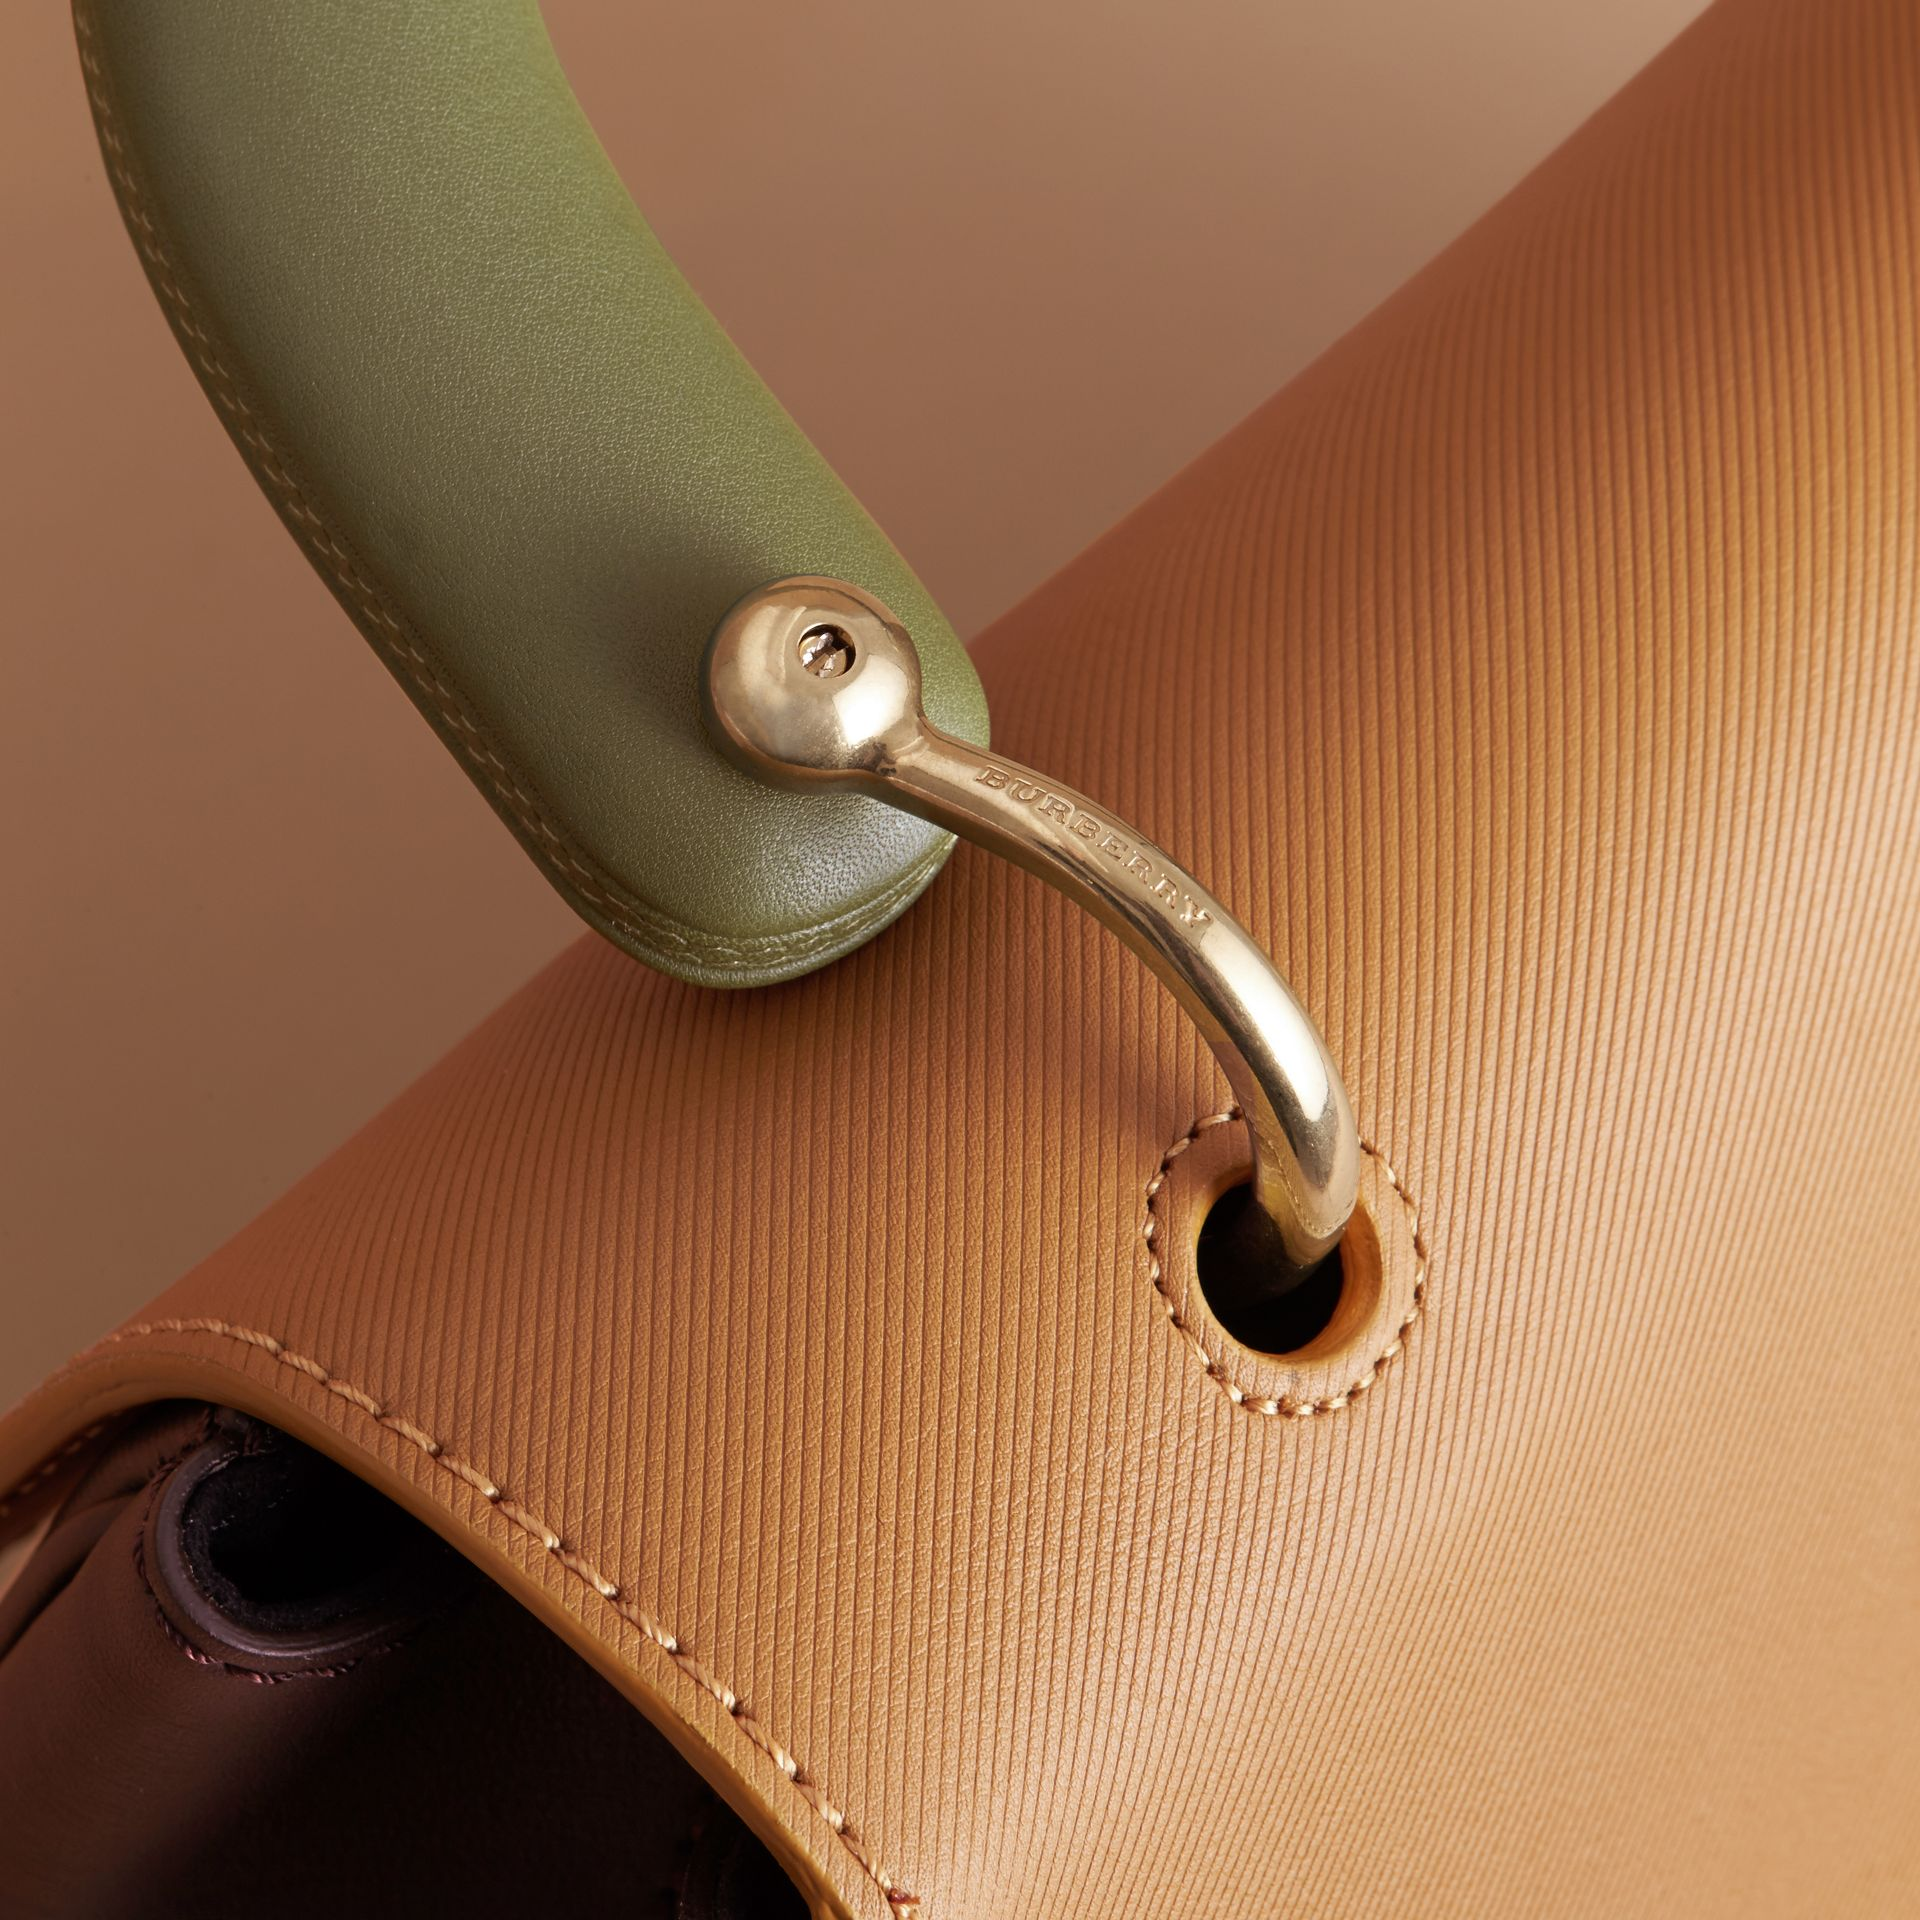 The Medium DK88 Top Handle Bag in Dark Chocolate/ochre Yellow - Women | Burberry Hong Kong - gallery image 6